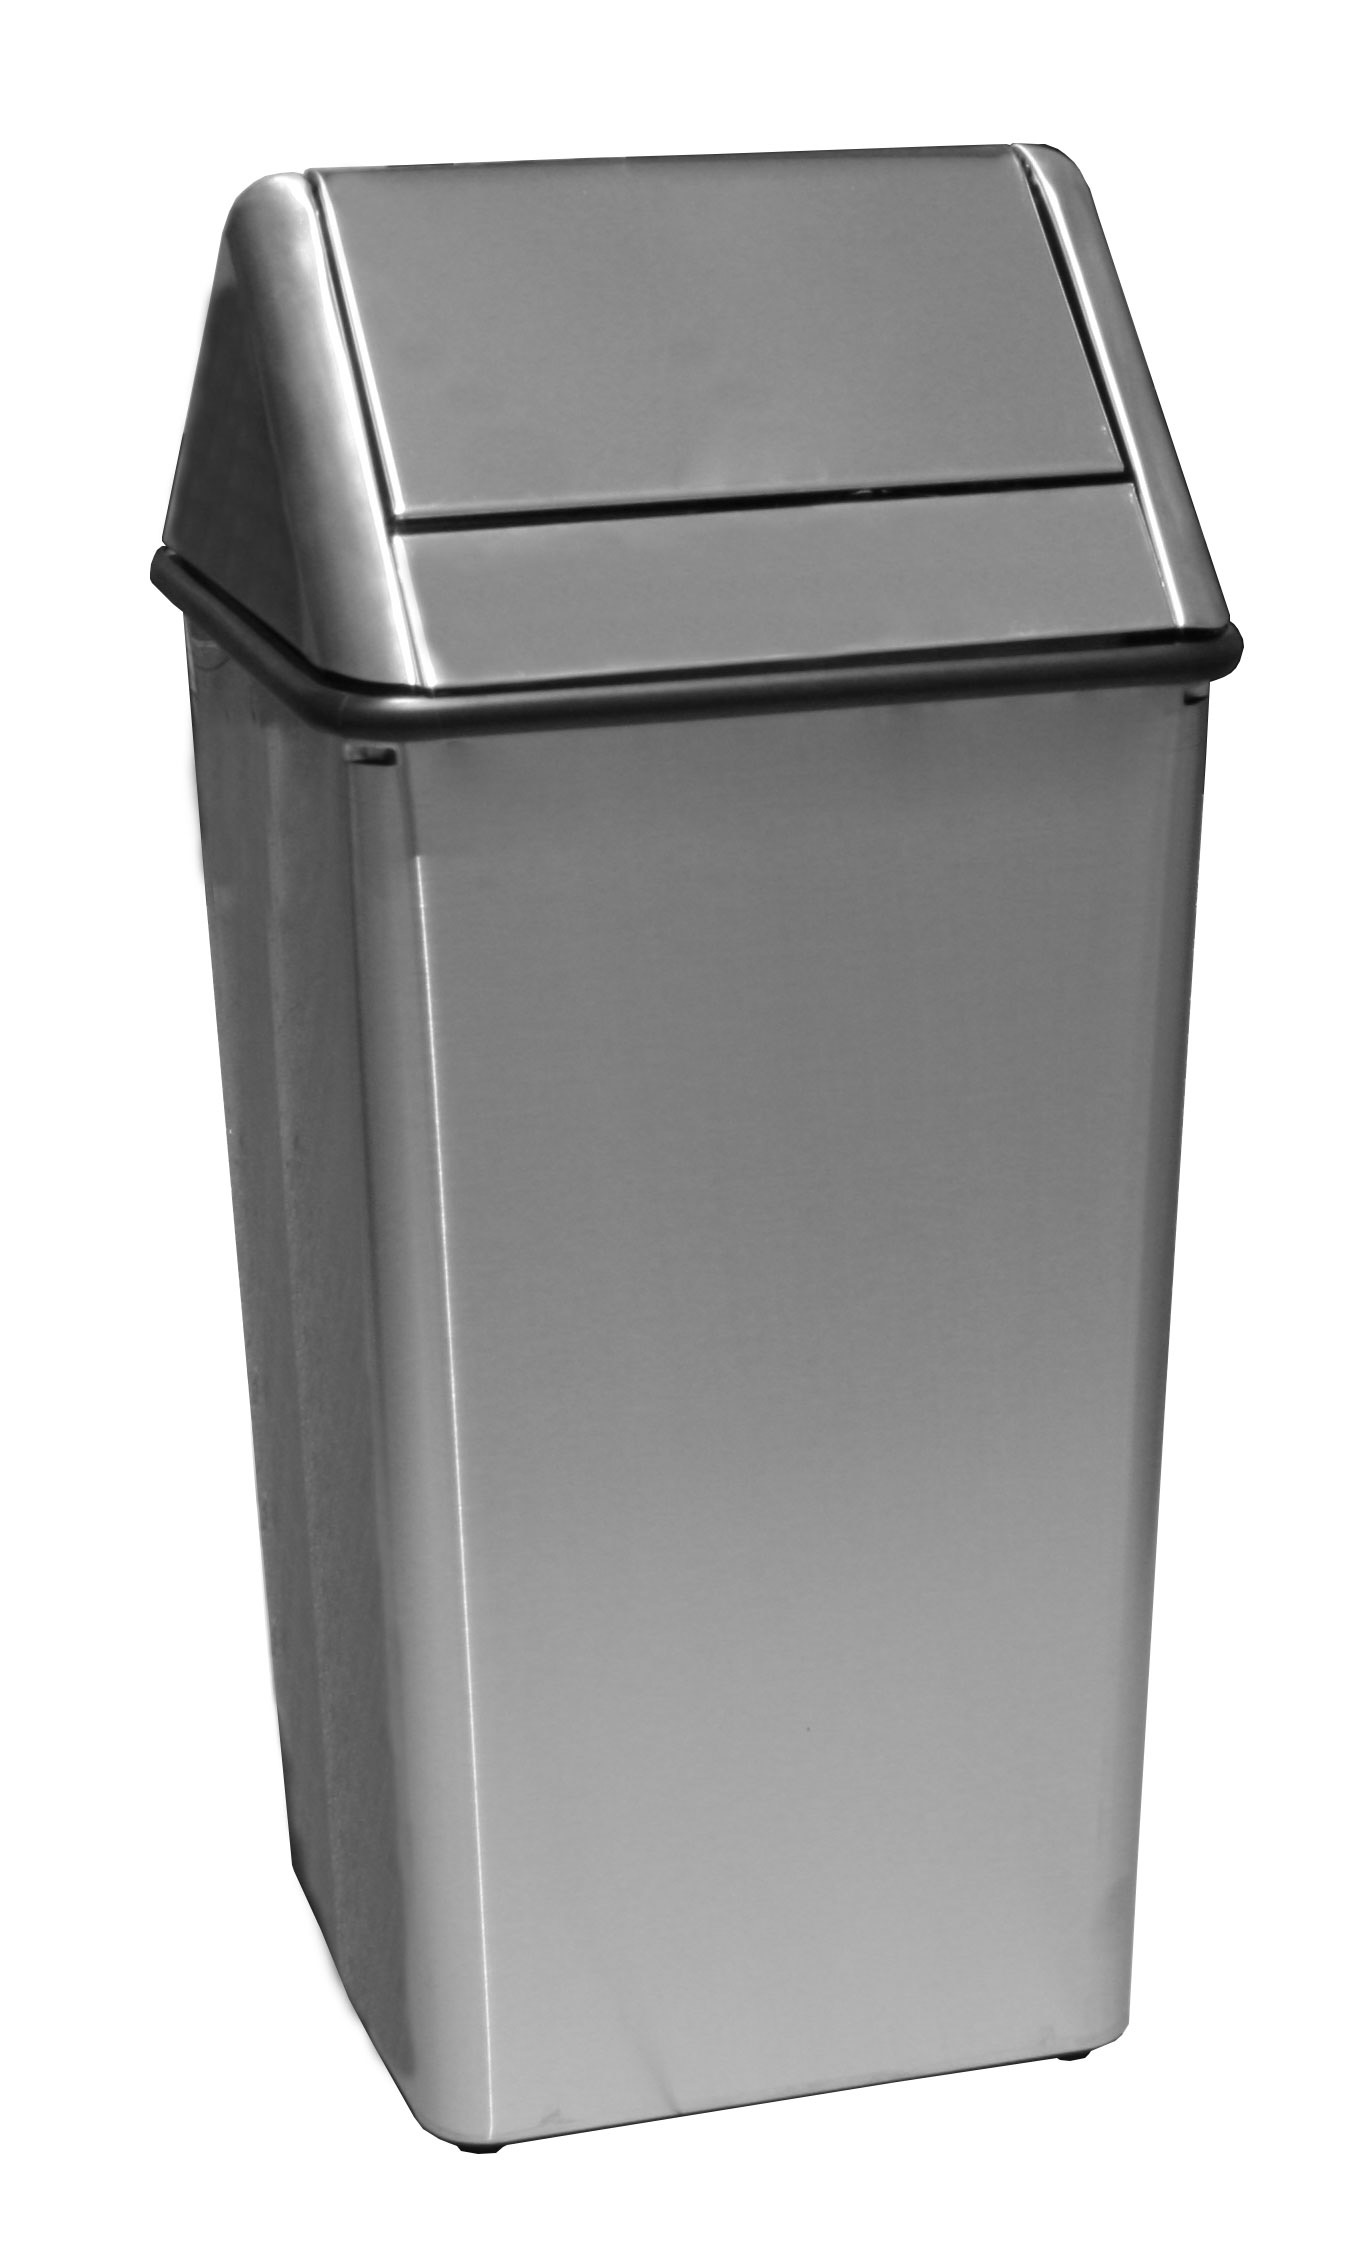 Witt Industries 1311HTSS 13-Gallon Indoor Trash Can w/ Square Hamper & Swing Top, Stainless